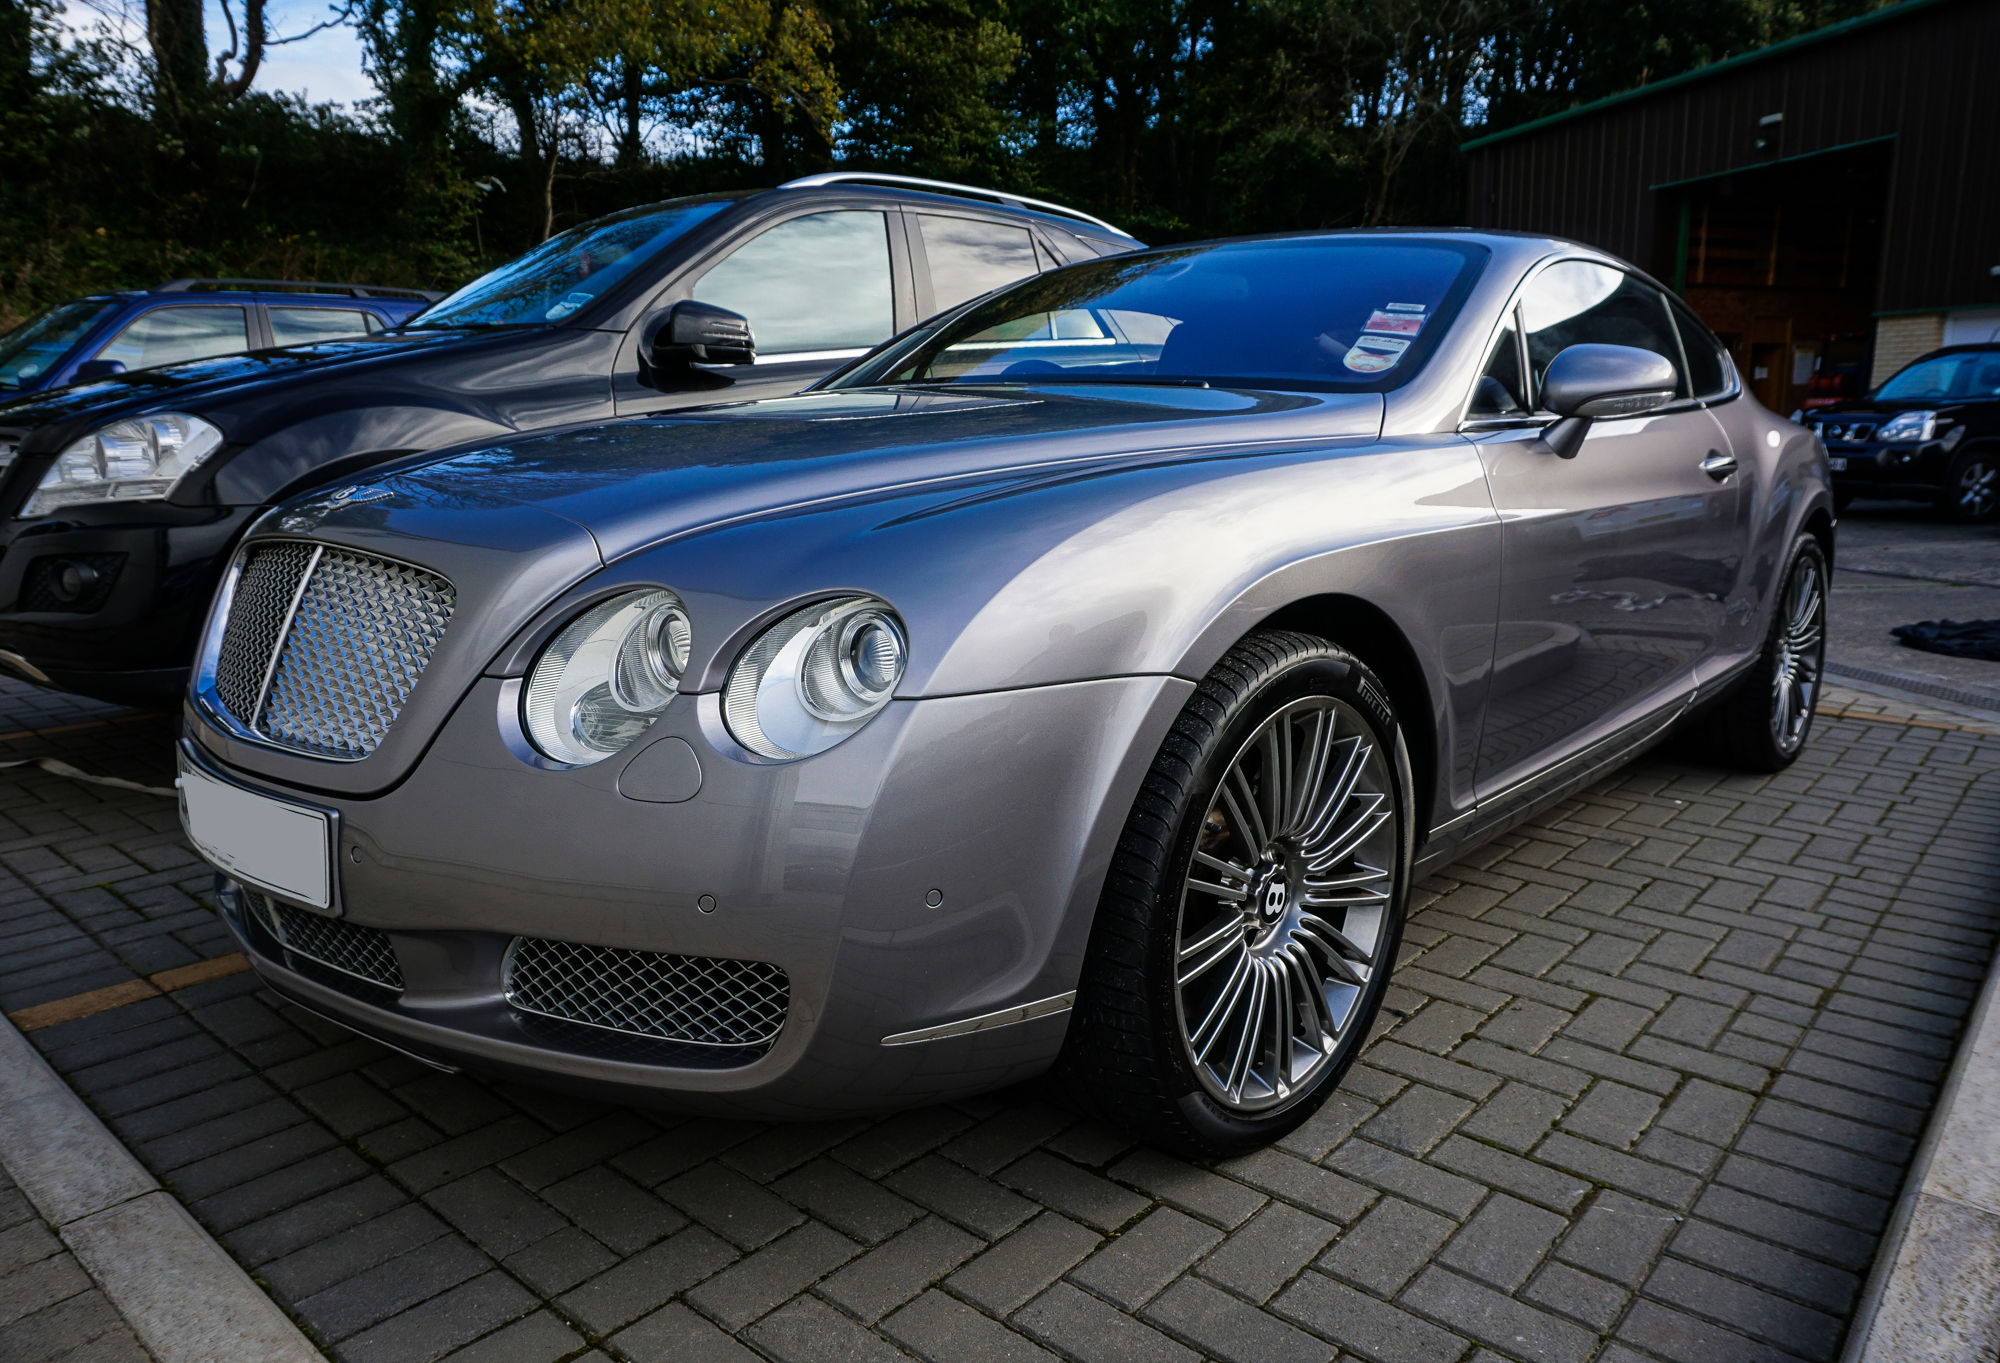 BENTLEY CONTINENTAL GT 6.0 from private